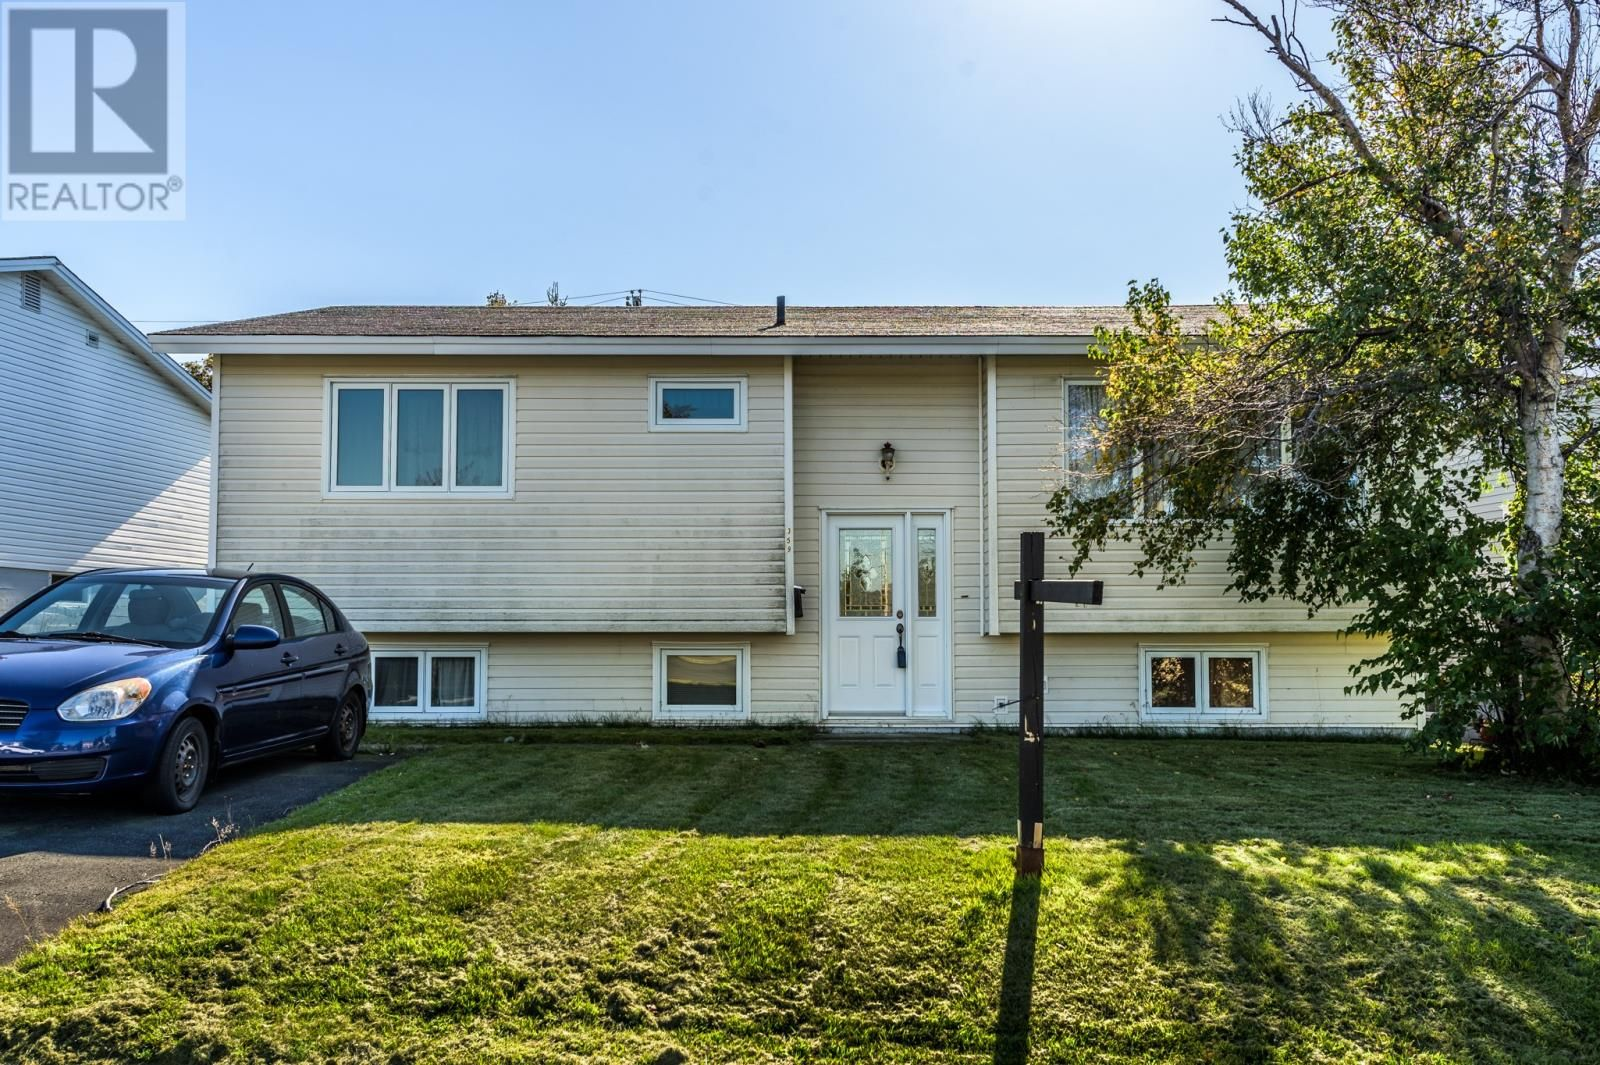 Main Photo: 359 Newfoundland Drive in St. John's: House for sale : MLS®# 1237578